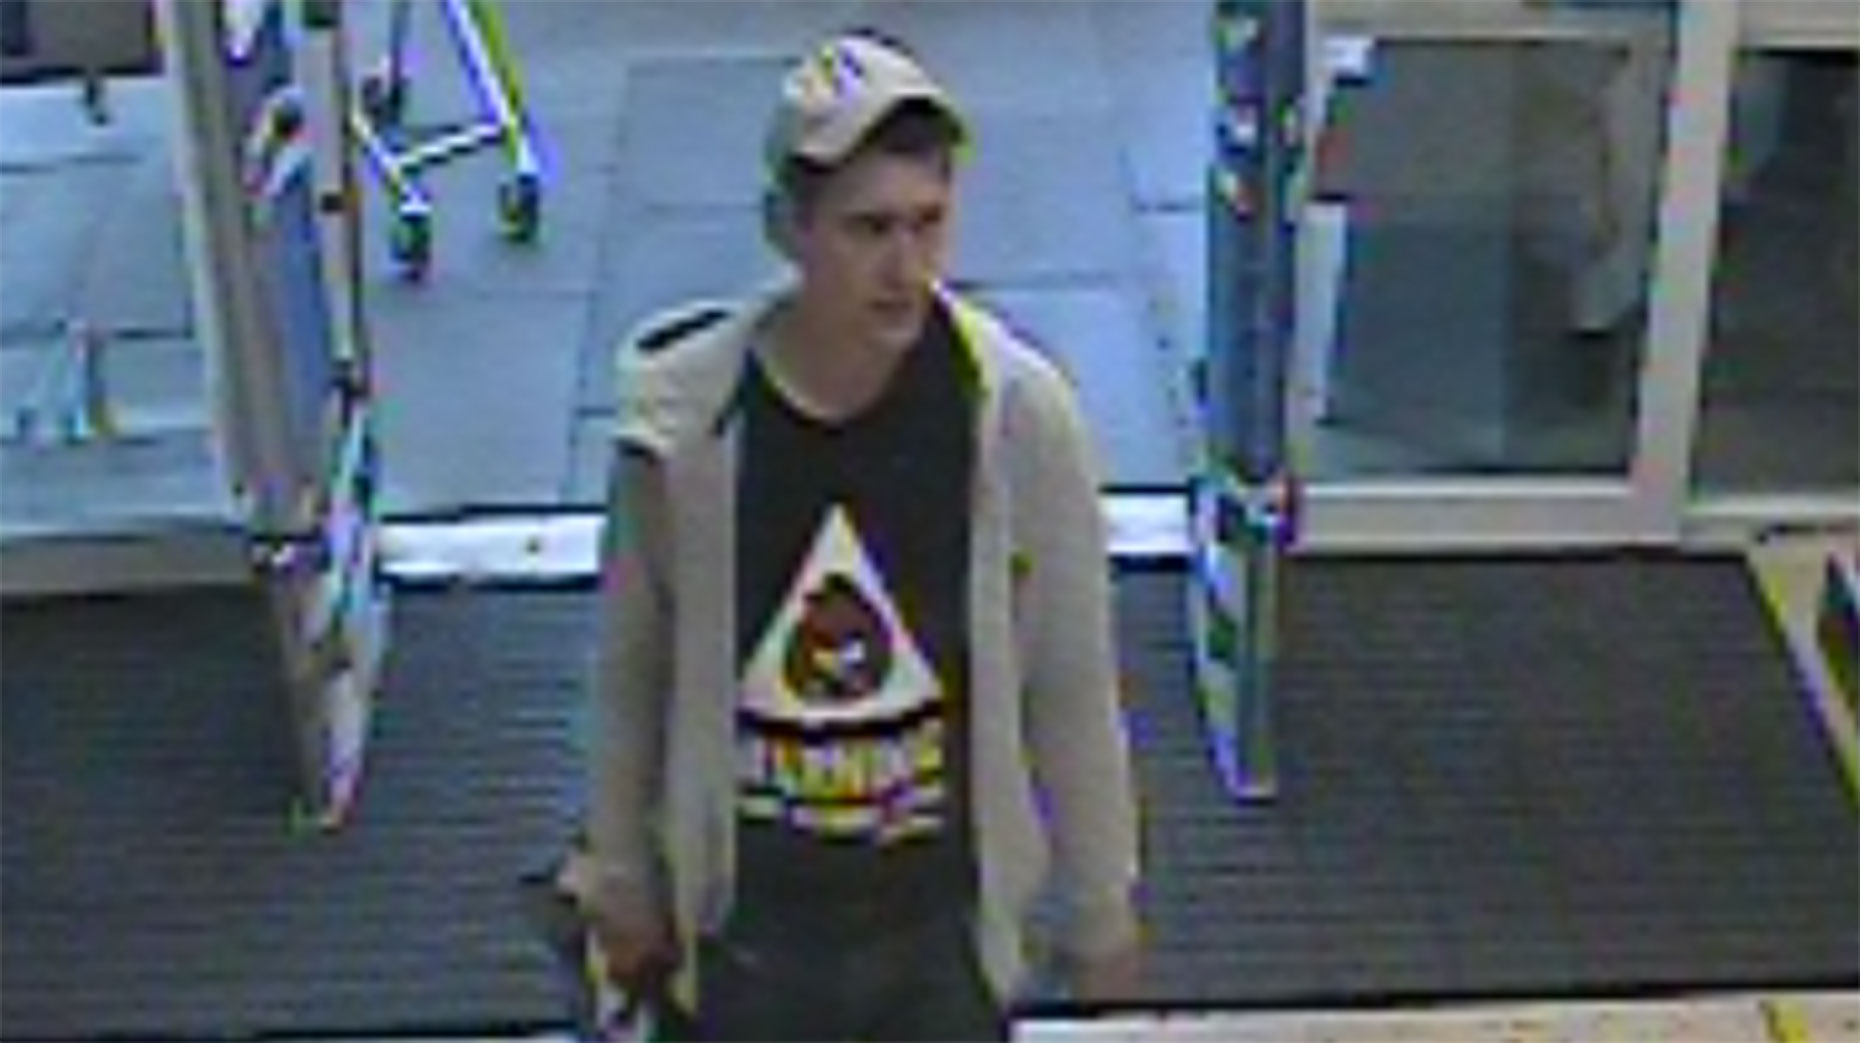 662ddfe599 CCTV appeal over Tesco DVDs theft